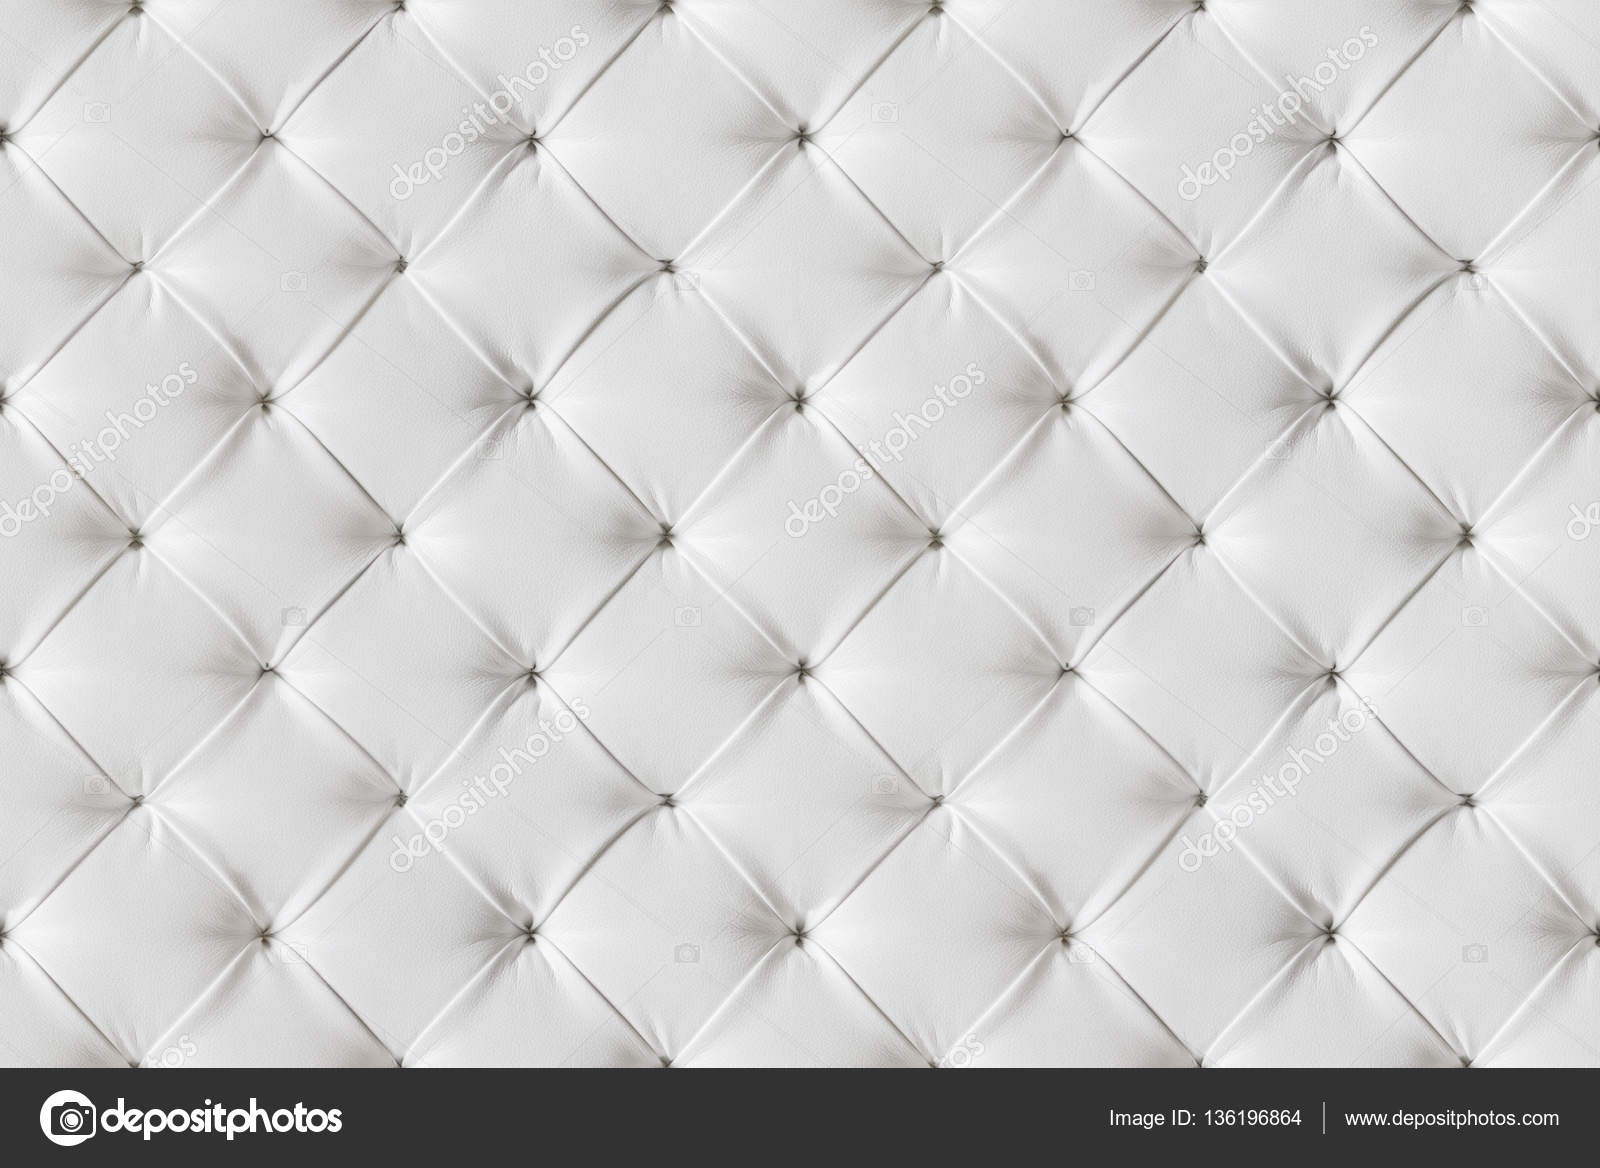 Leather Sofa Texture Seamless Background White Leathers Upholstery Stock Photo